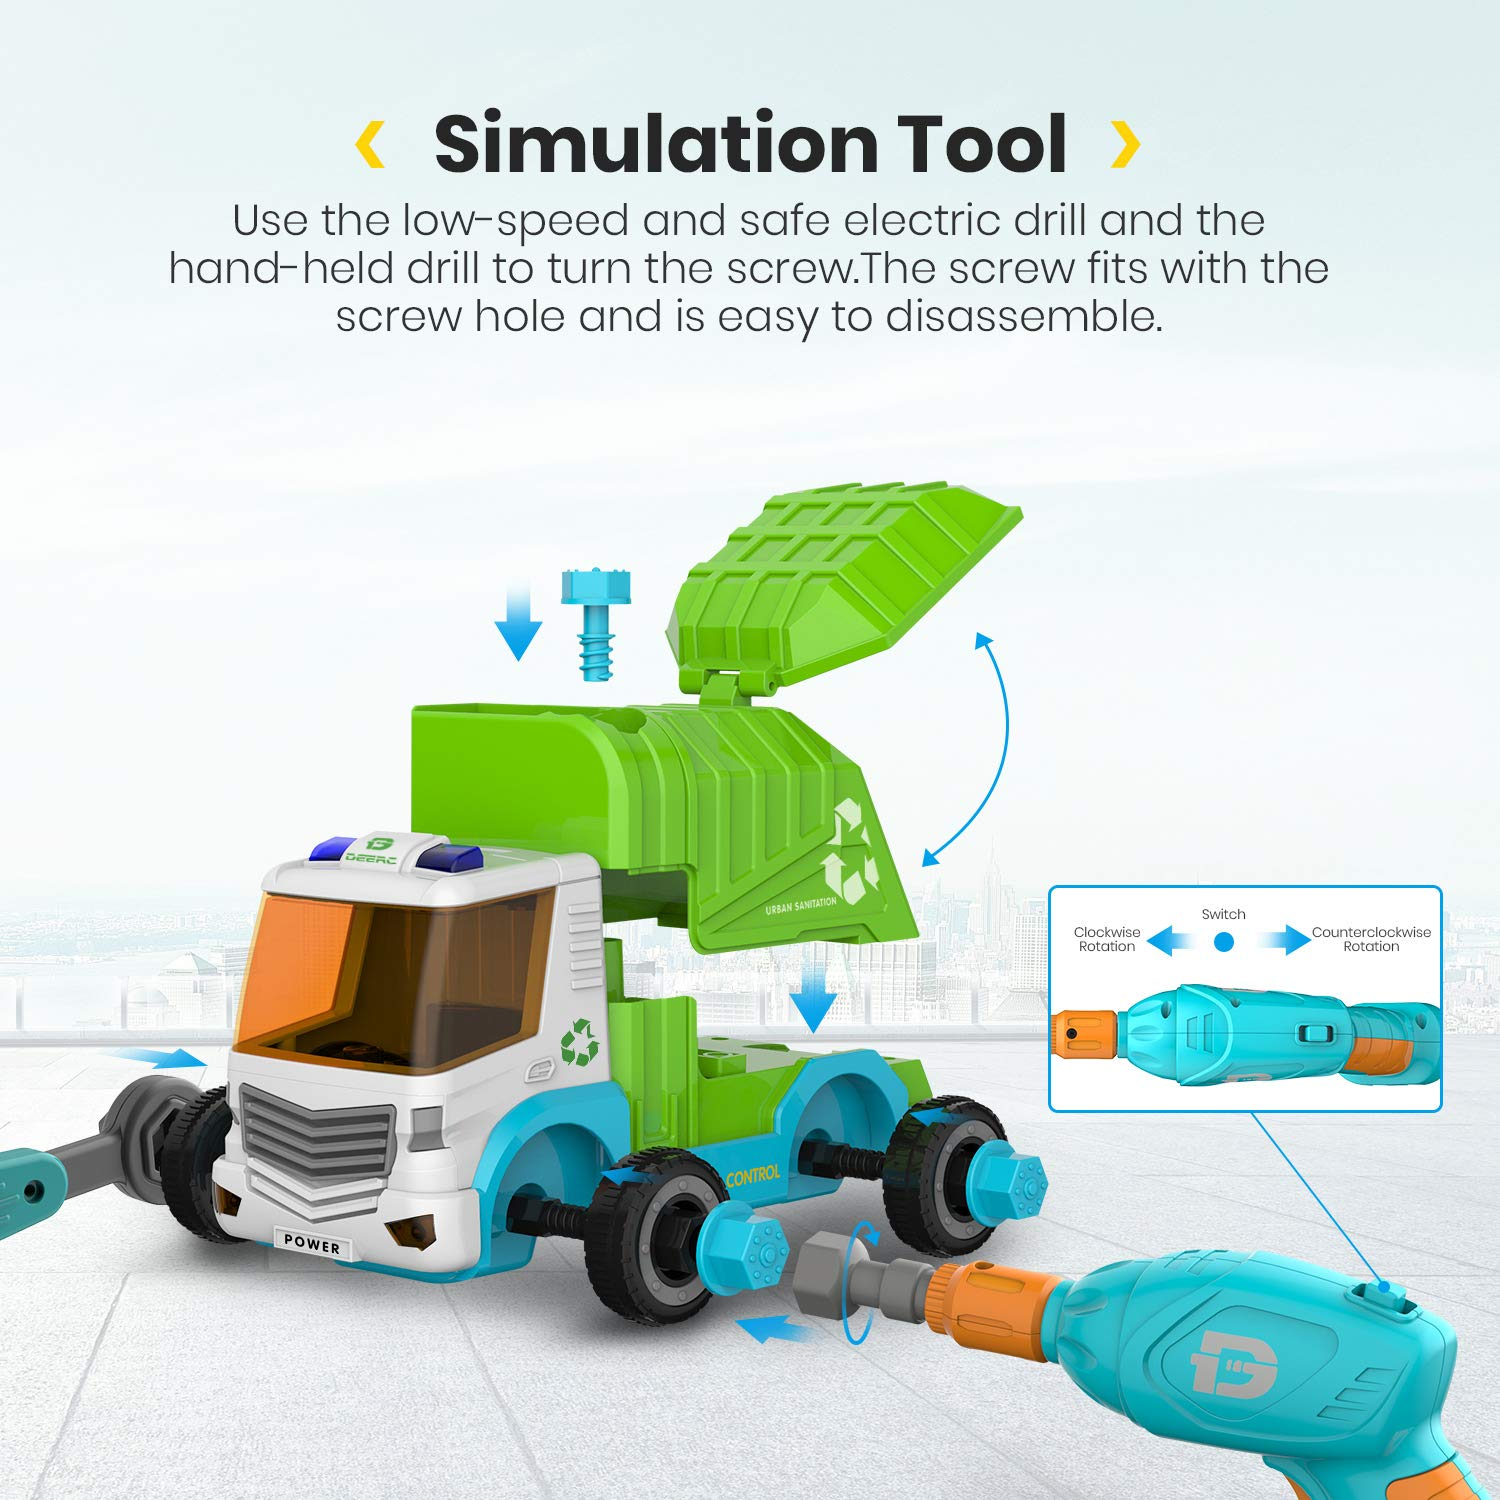 DEERC Remote Control Cars Take Apart Toys for Kids with 2.4GHz - Construction Toy STEM Build Your Own Dump Truck with Electric Drill, Music & Lights - Assembly Car Toys Gifts for Boys and Girls